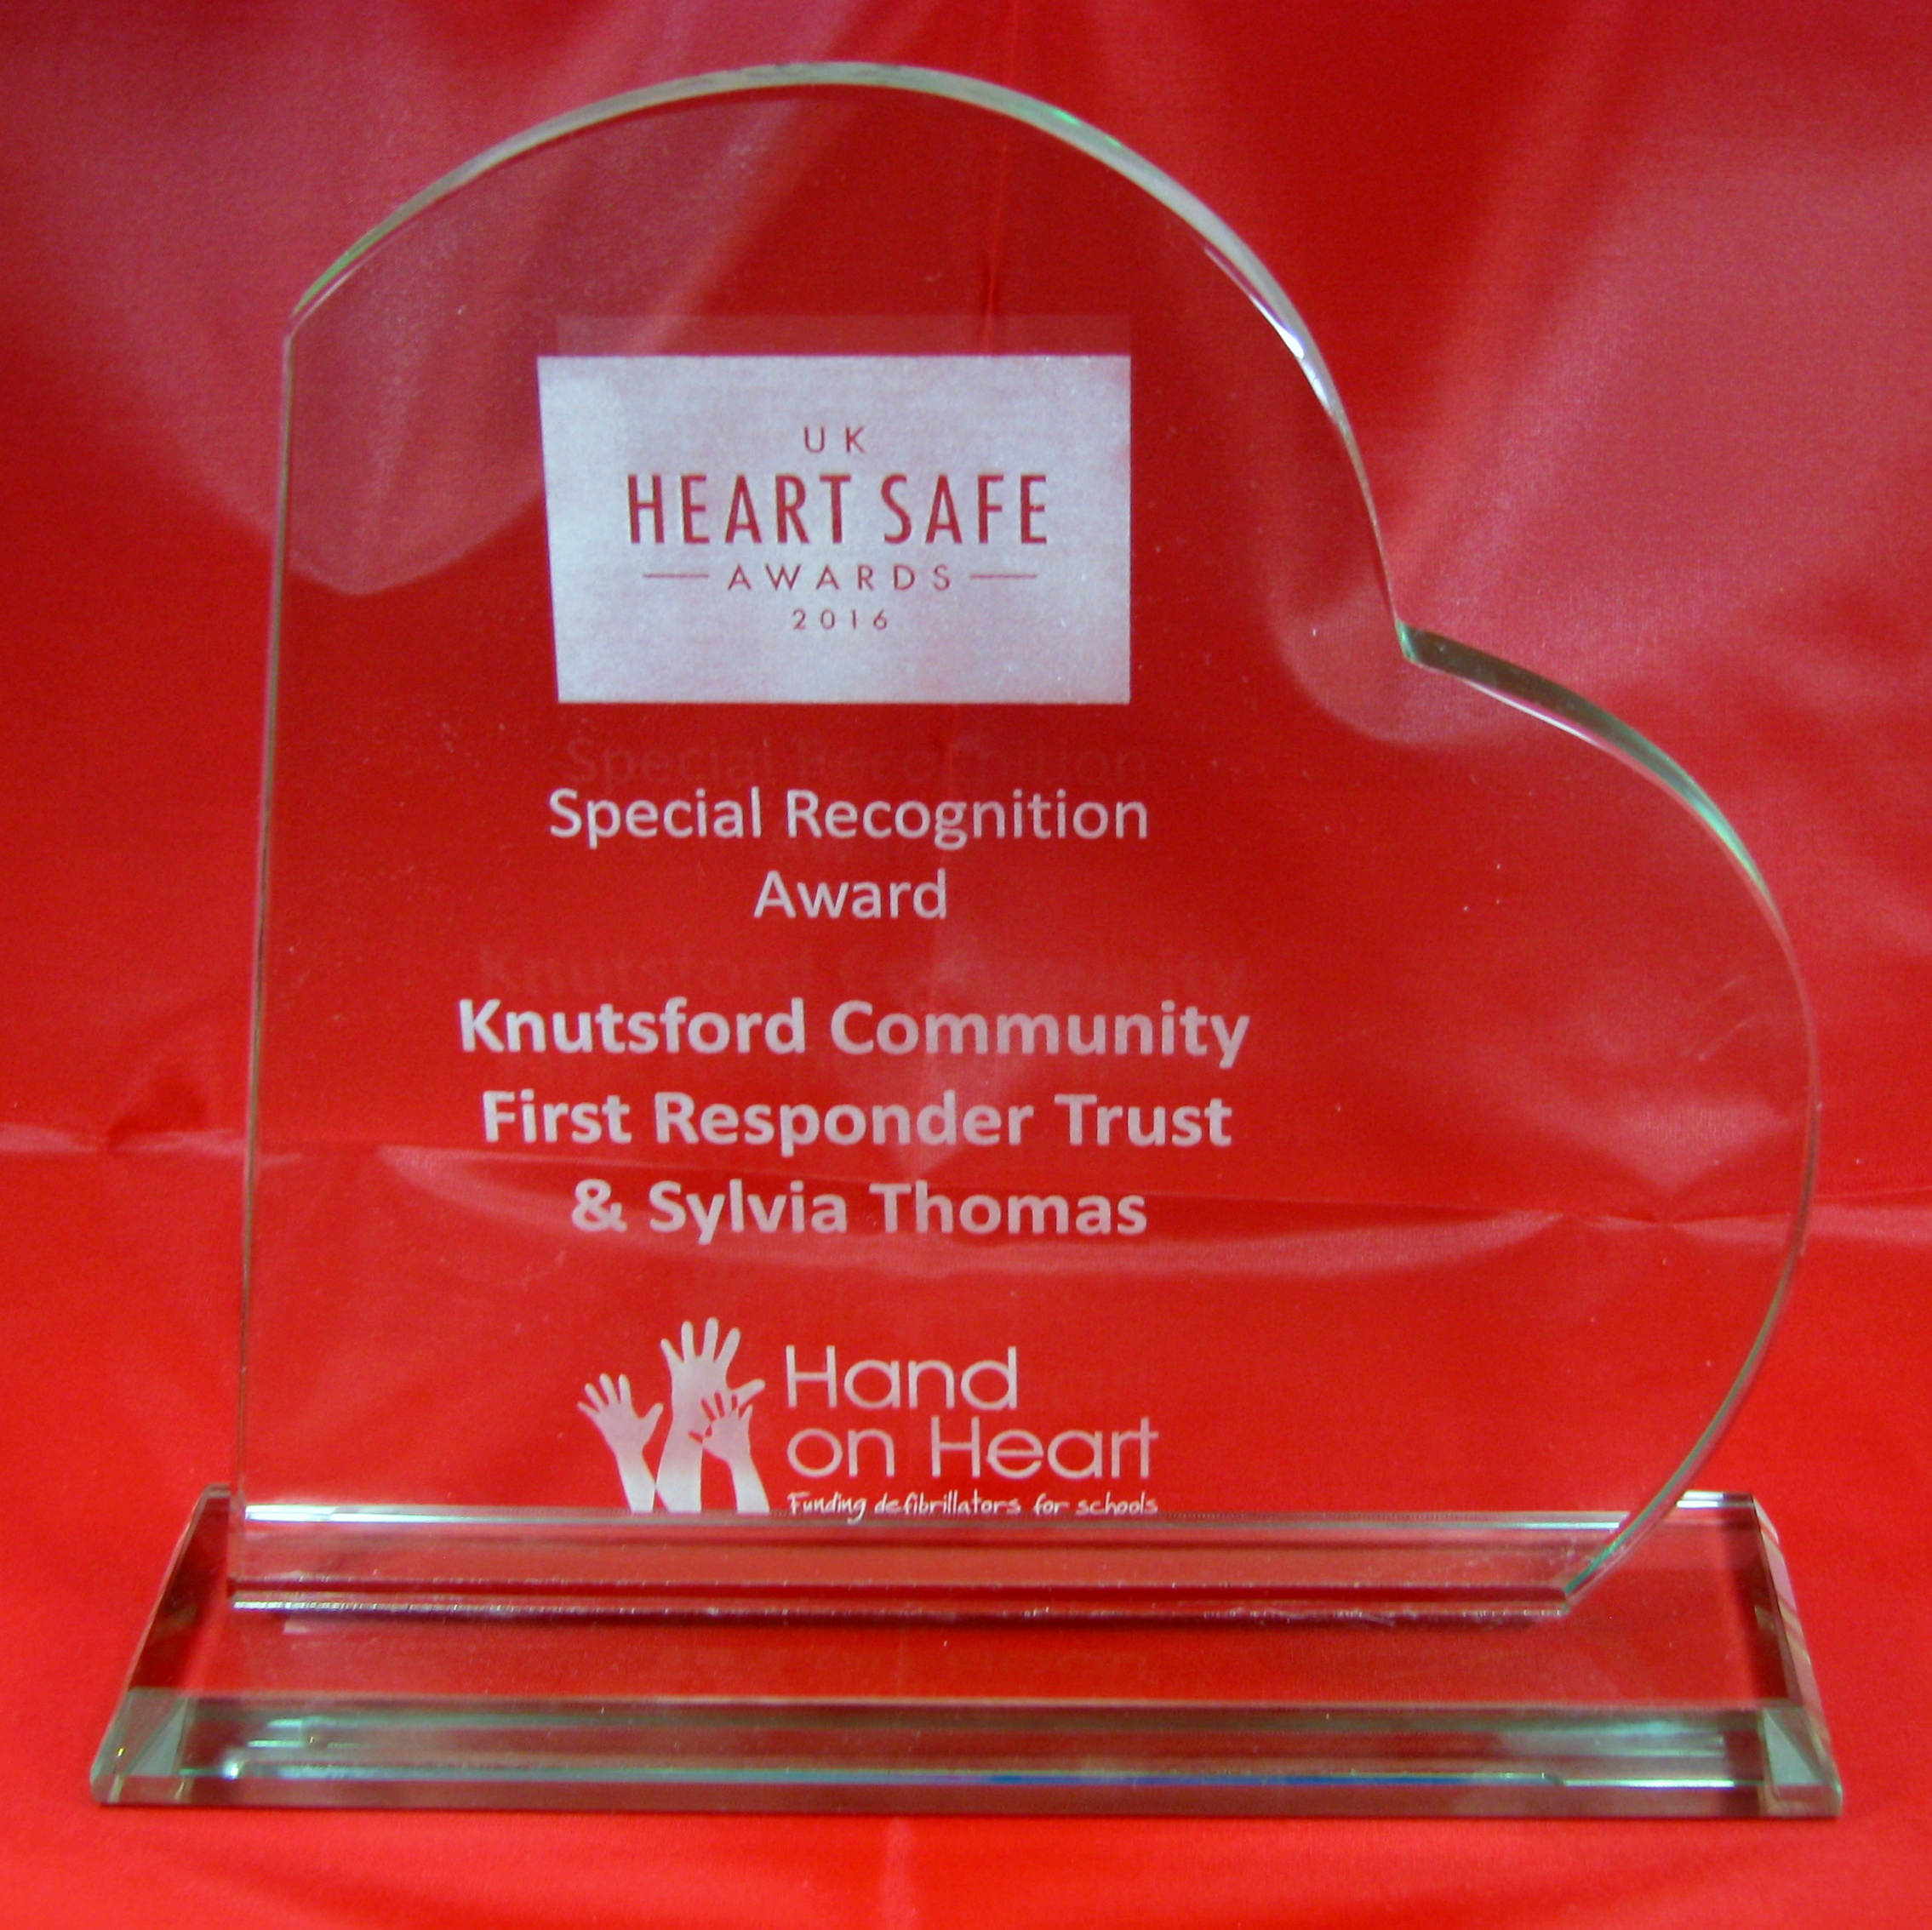 heart-safe-award-2016-3